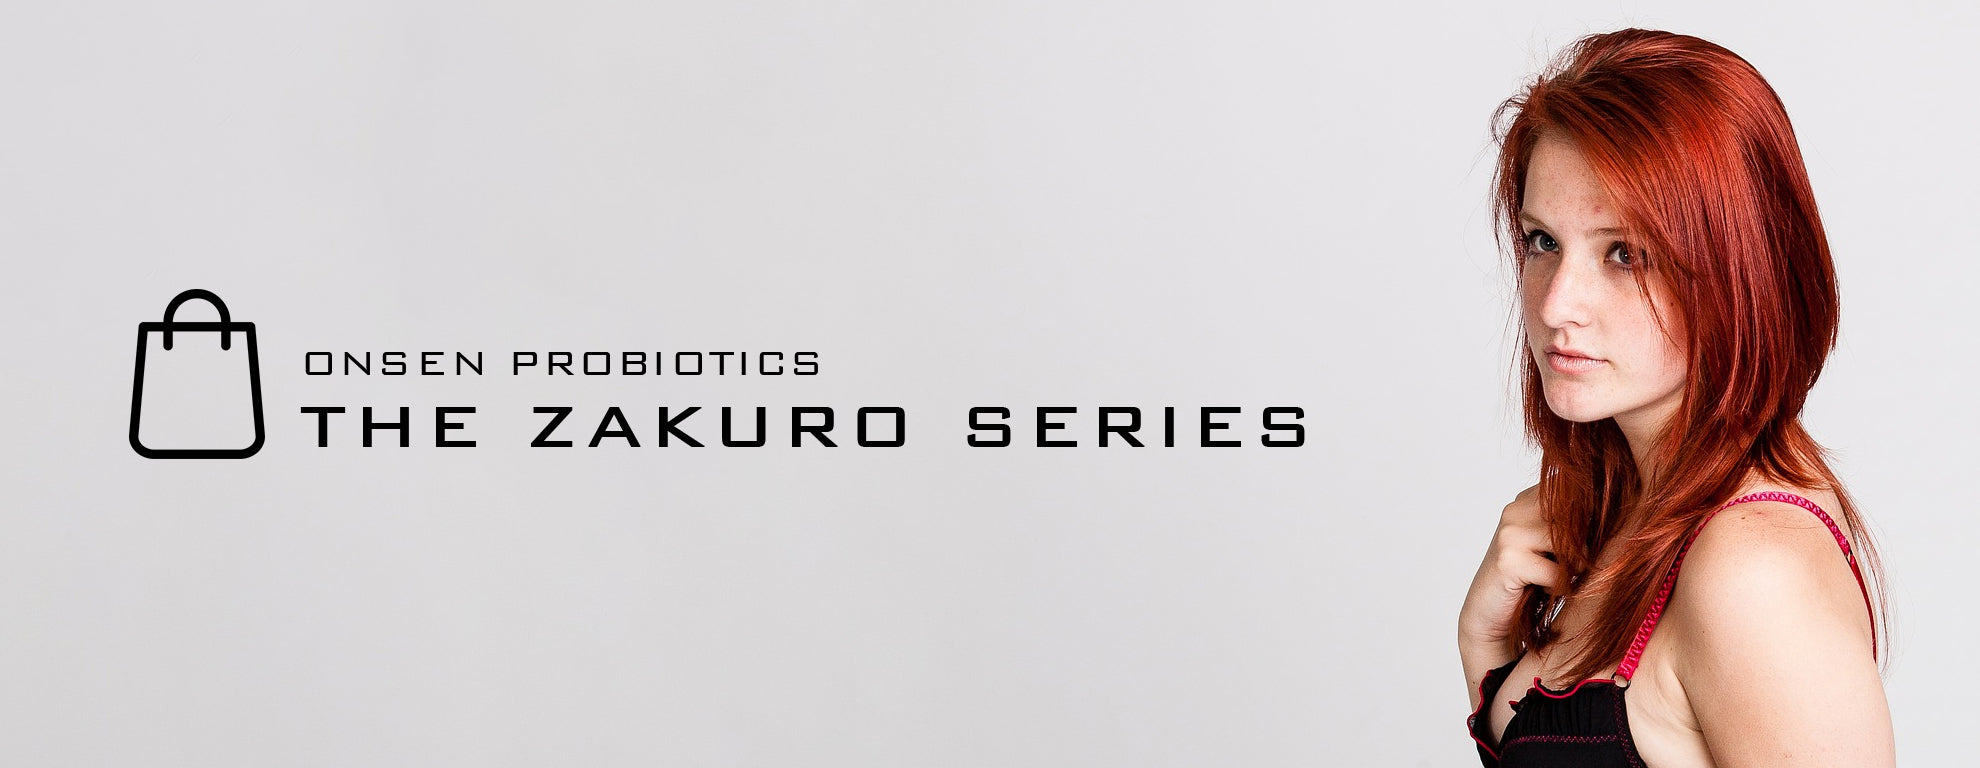 The Zakuro Series